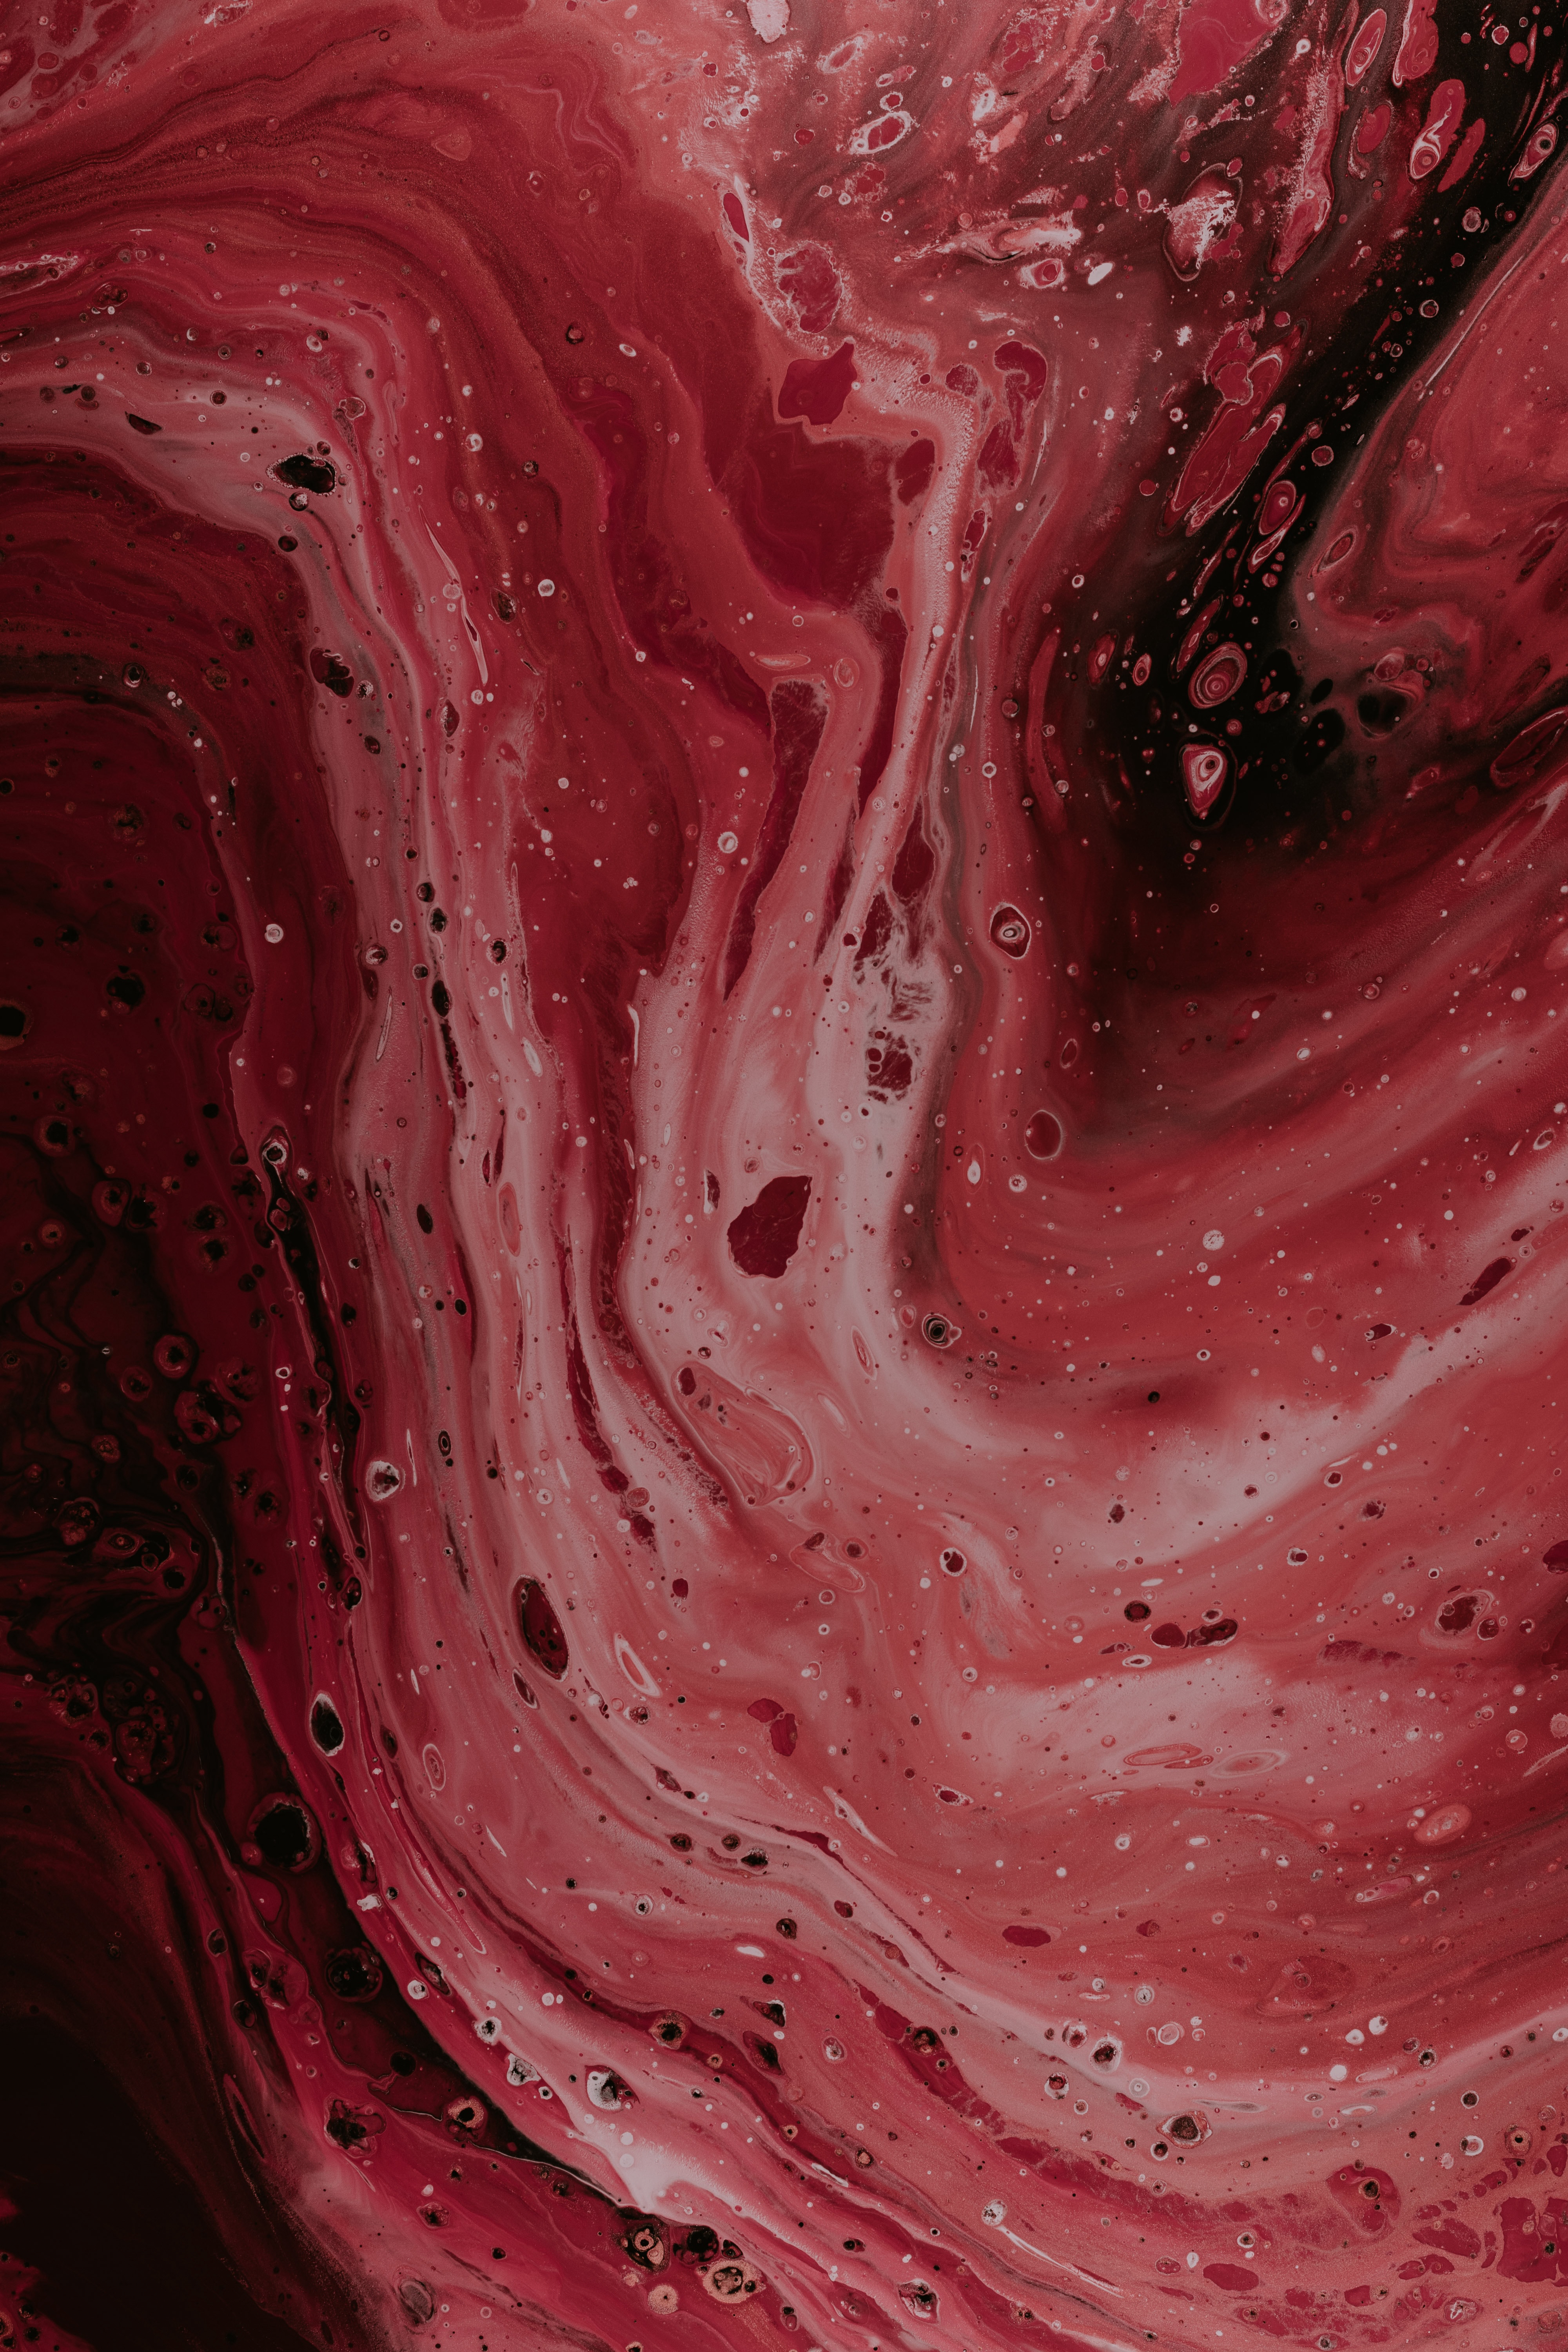 138370 download wallpaper Abstract, Divorces, Liquid, Texture screensavers and pictures for free